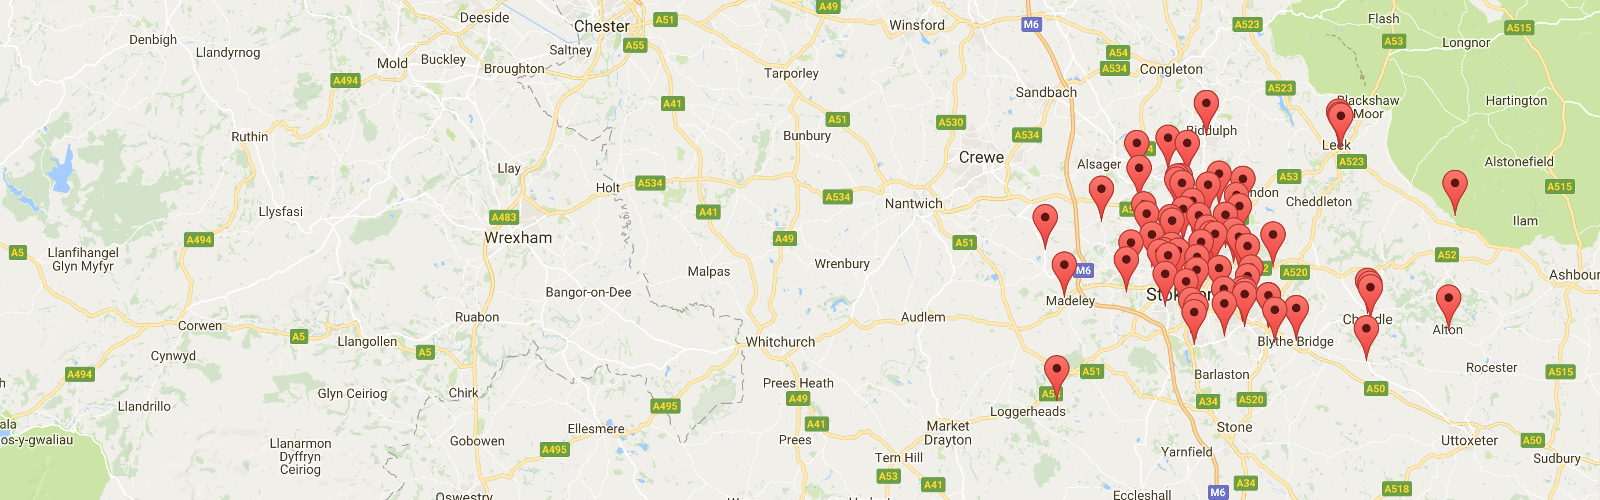 Map of GP Practices in North Staffordshire GP Federation